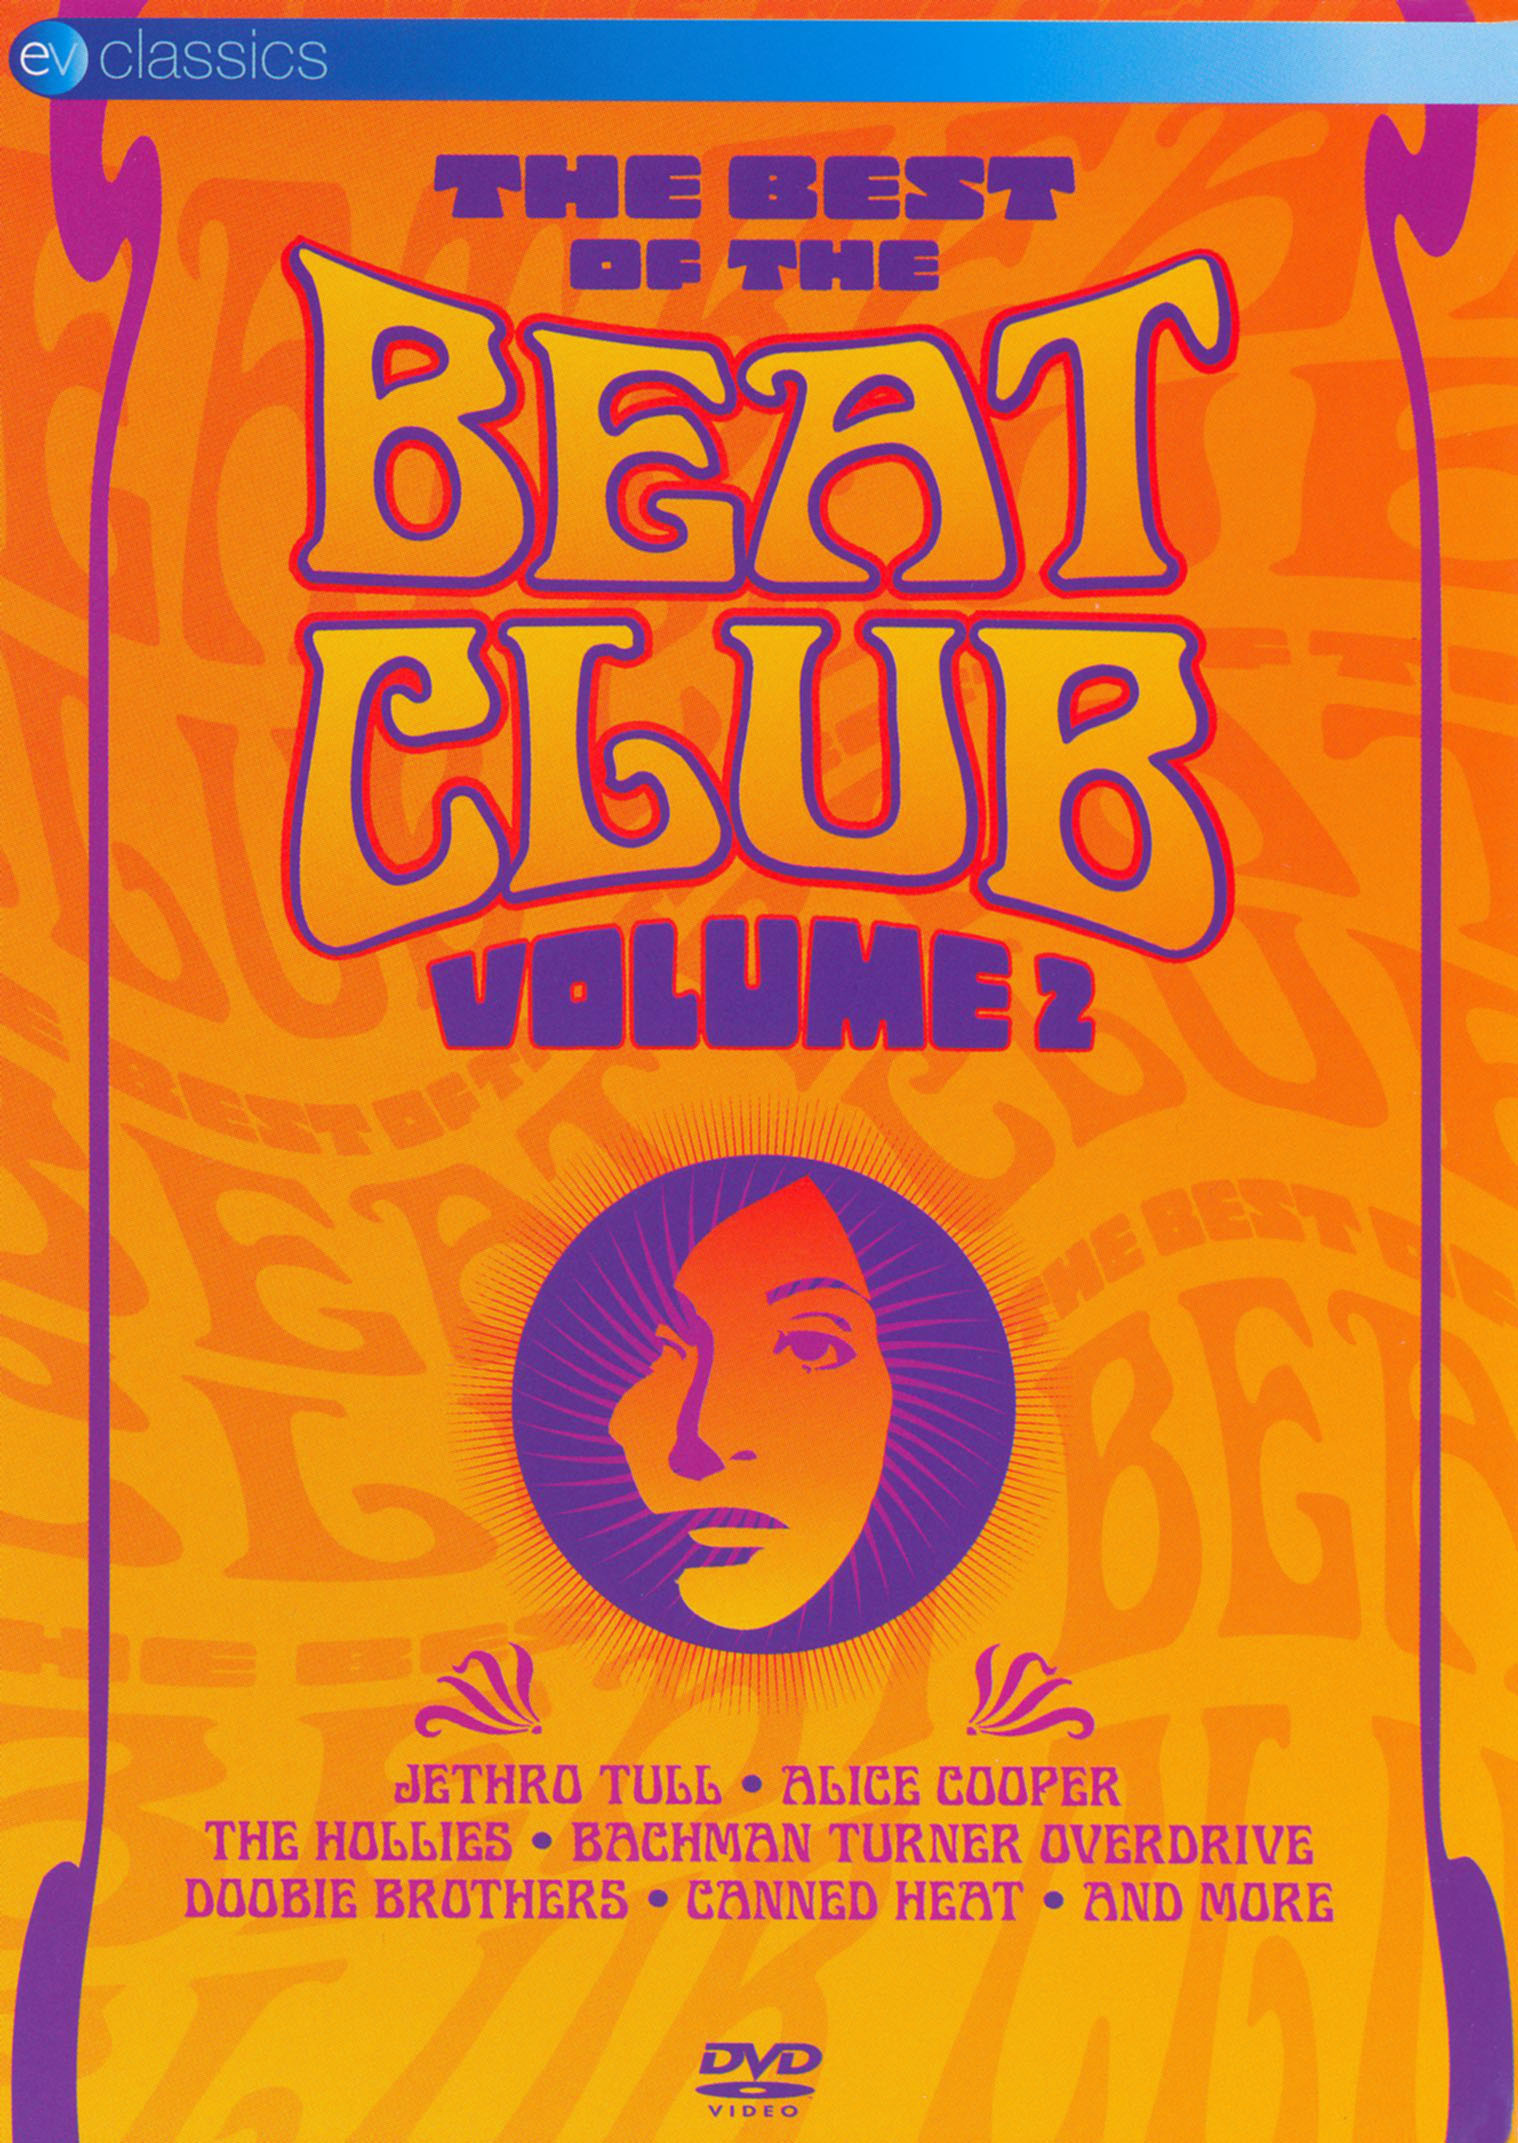 The Best of the Beat Club, Vol. 2